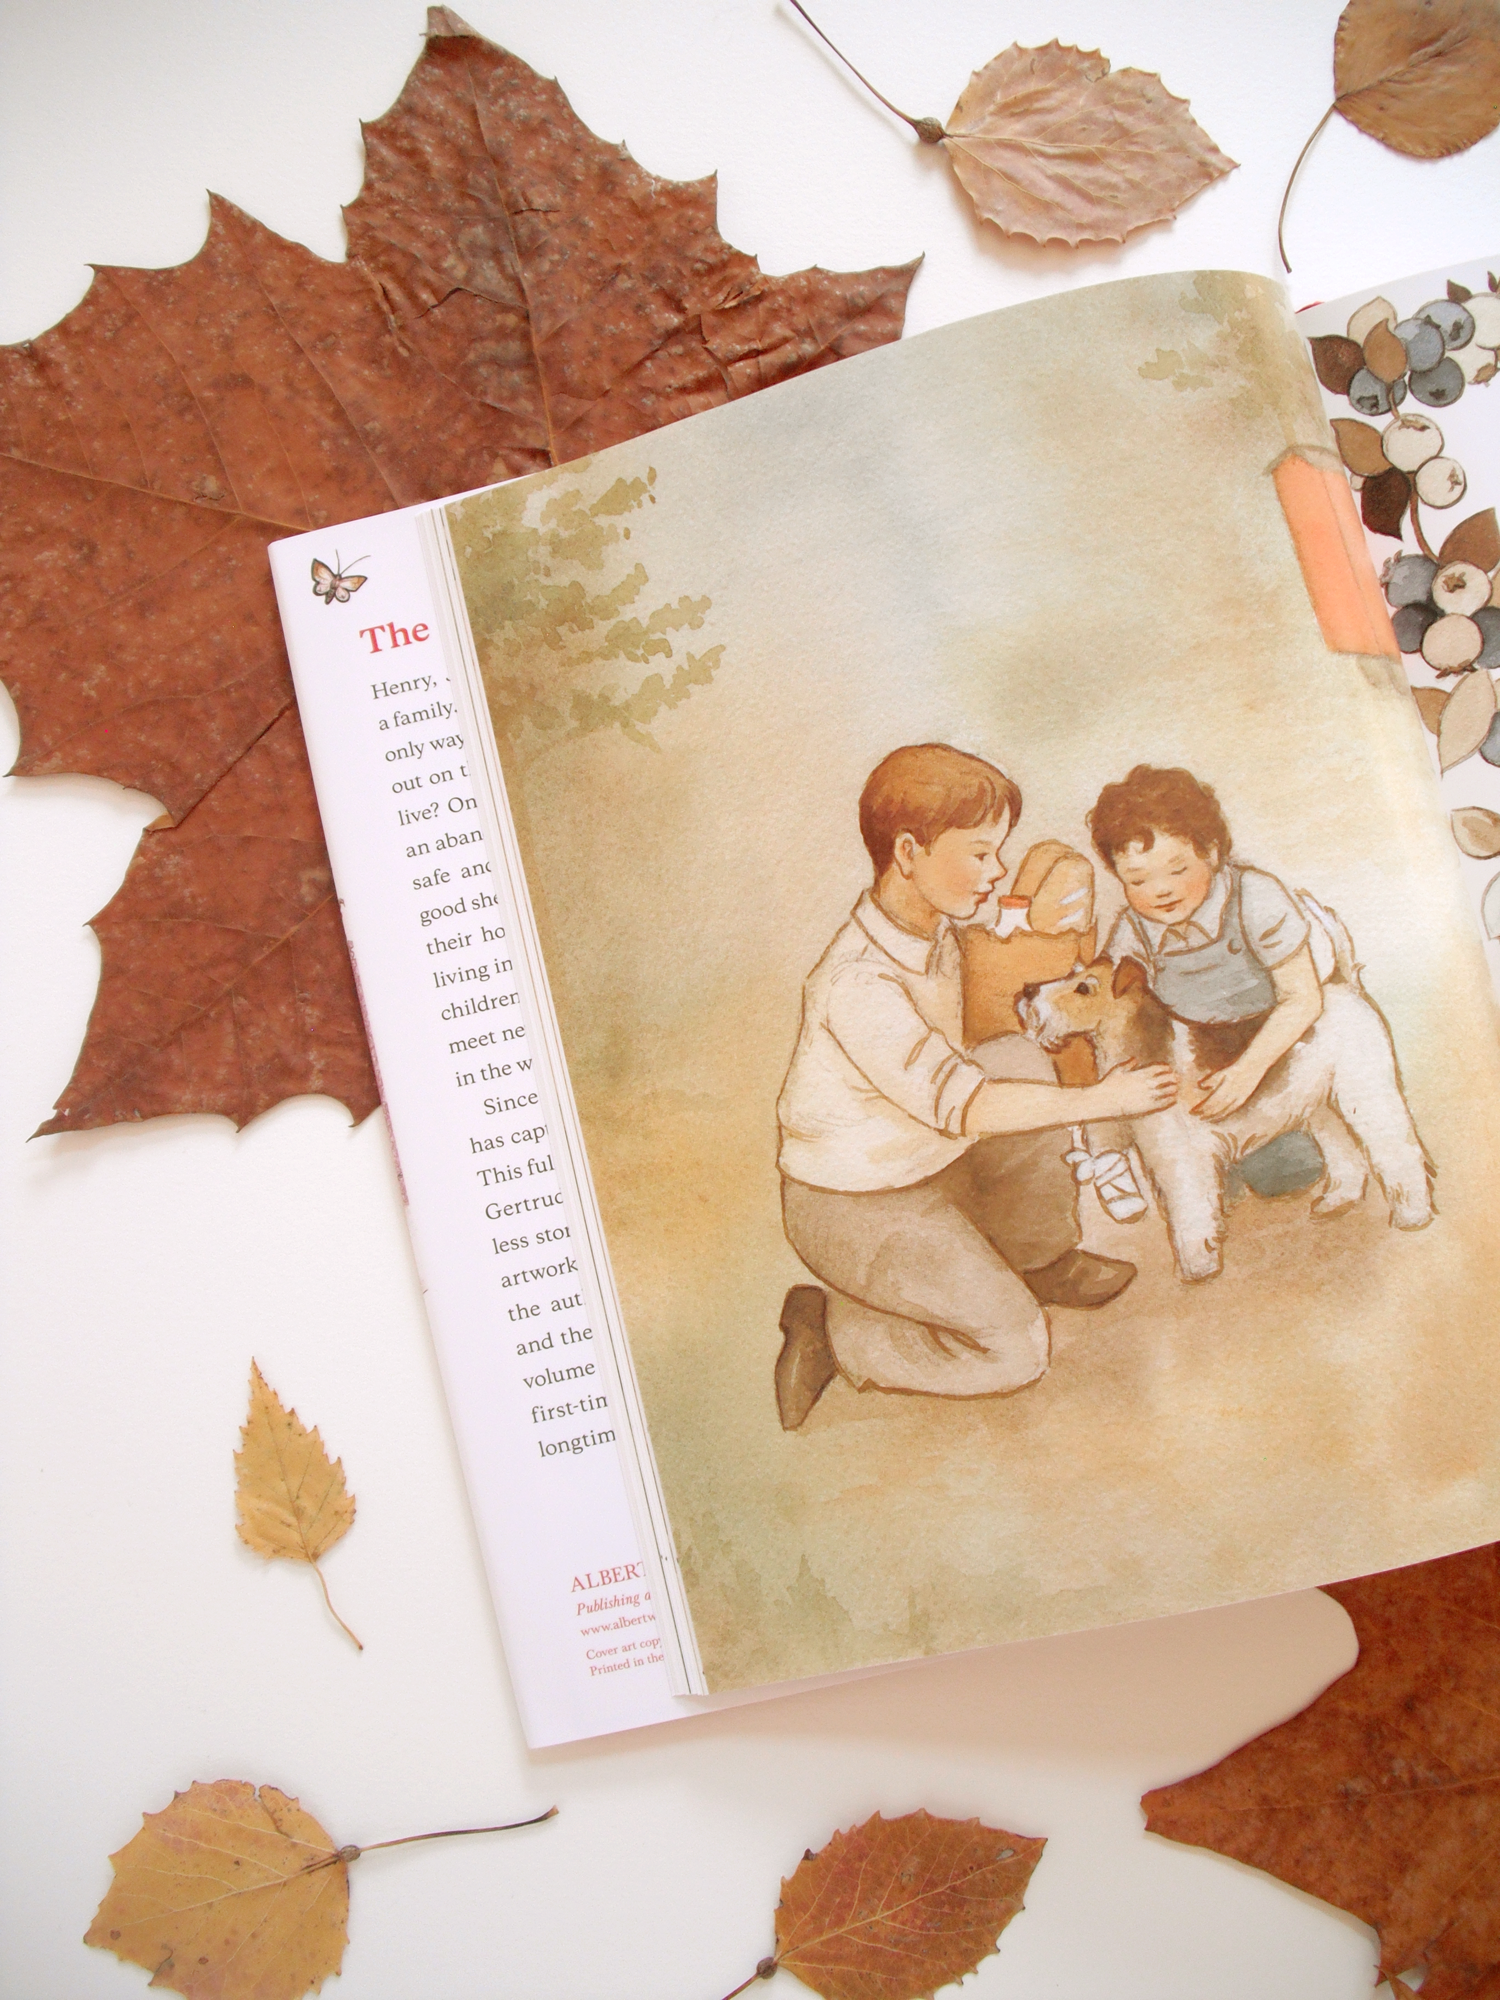 the-boxcar-children-book-release2.png